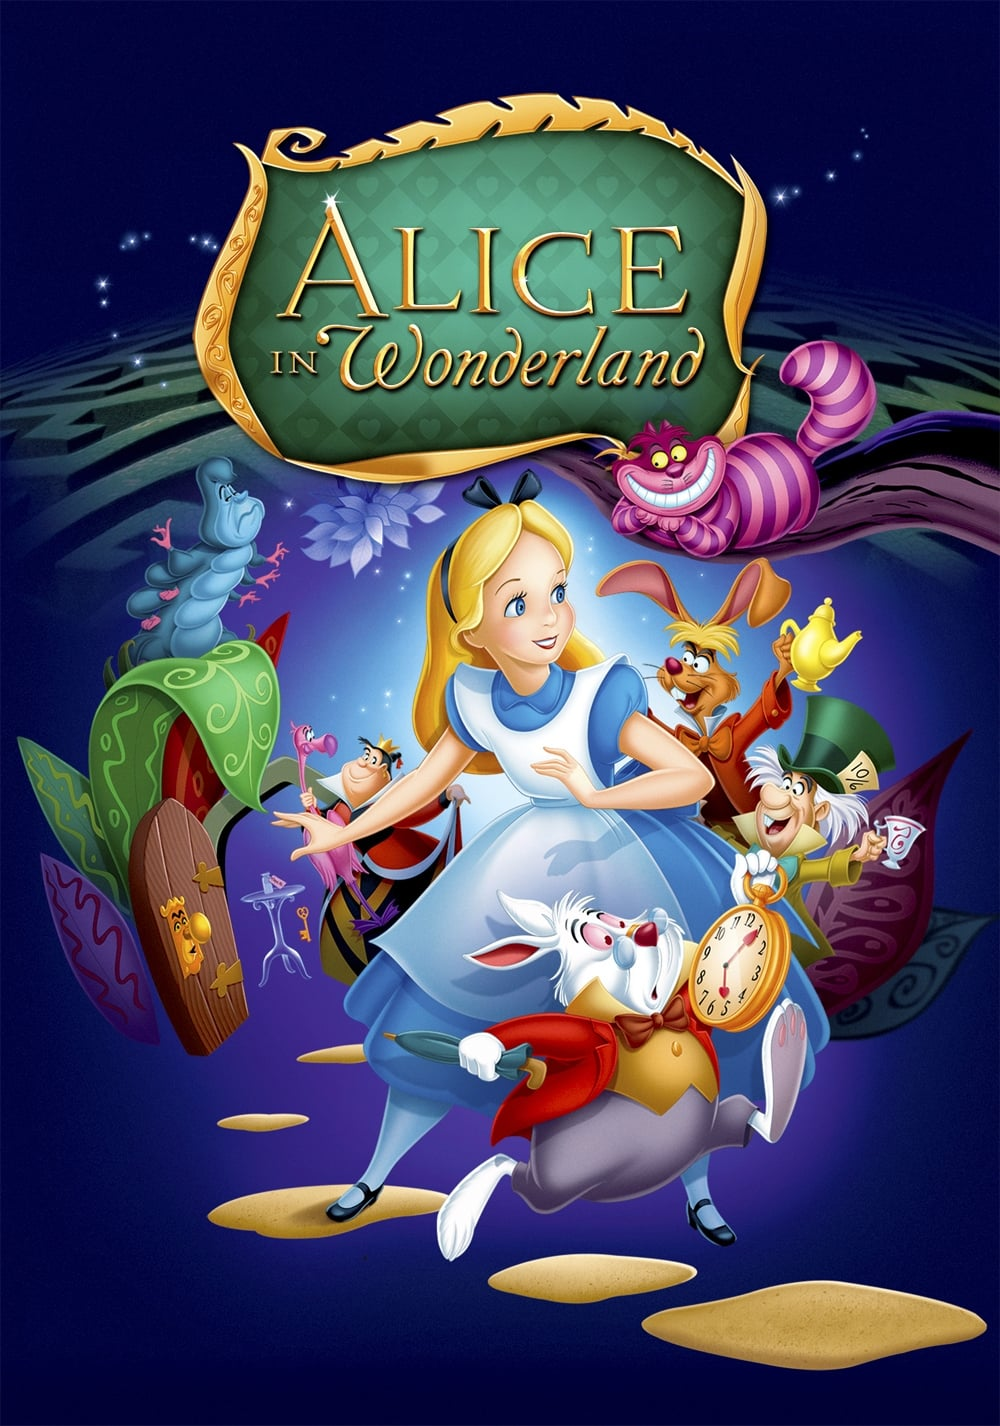 alice in wonderland 1951 full movie free download